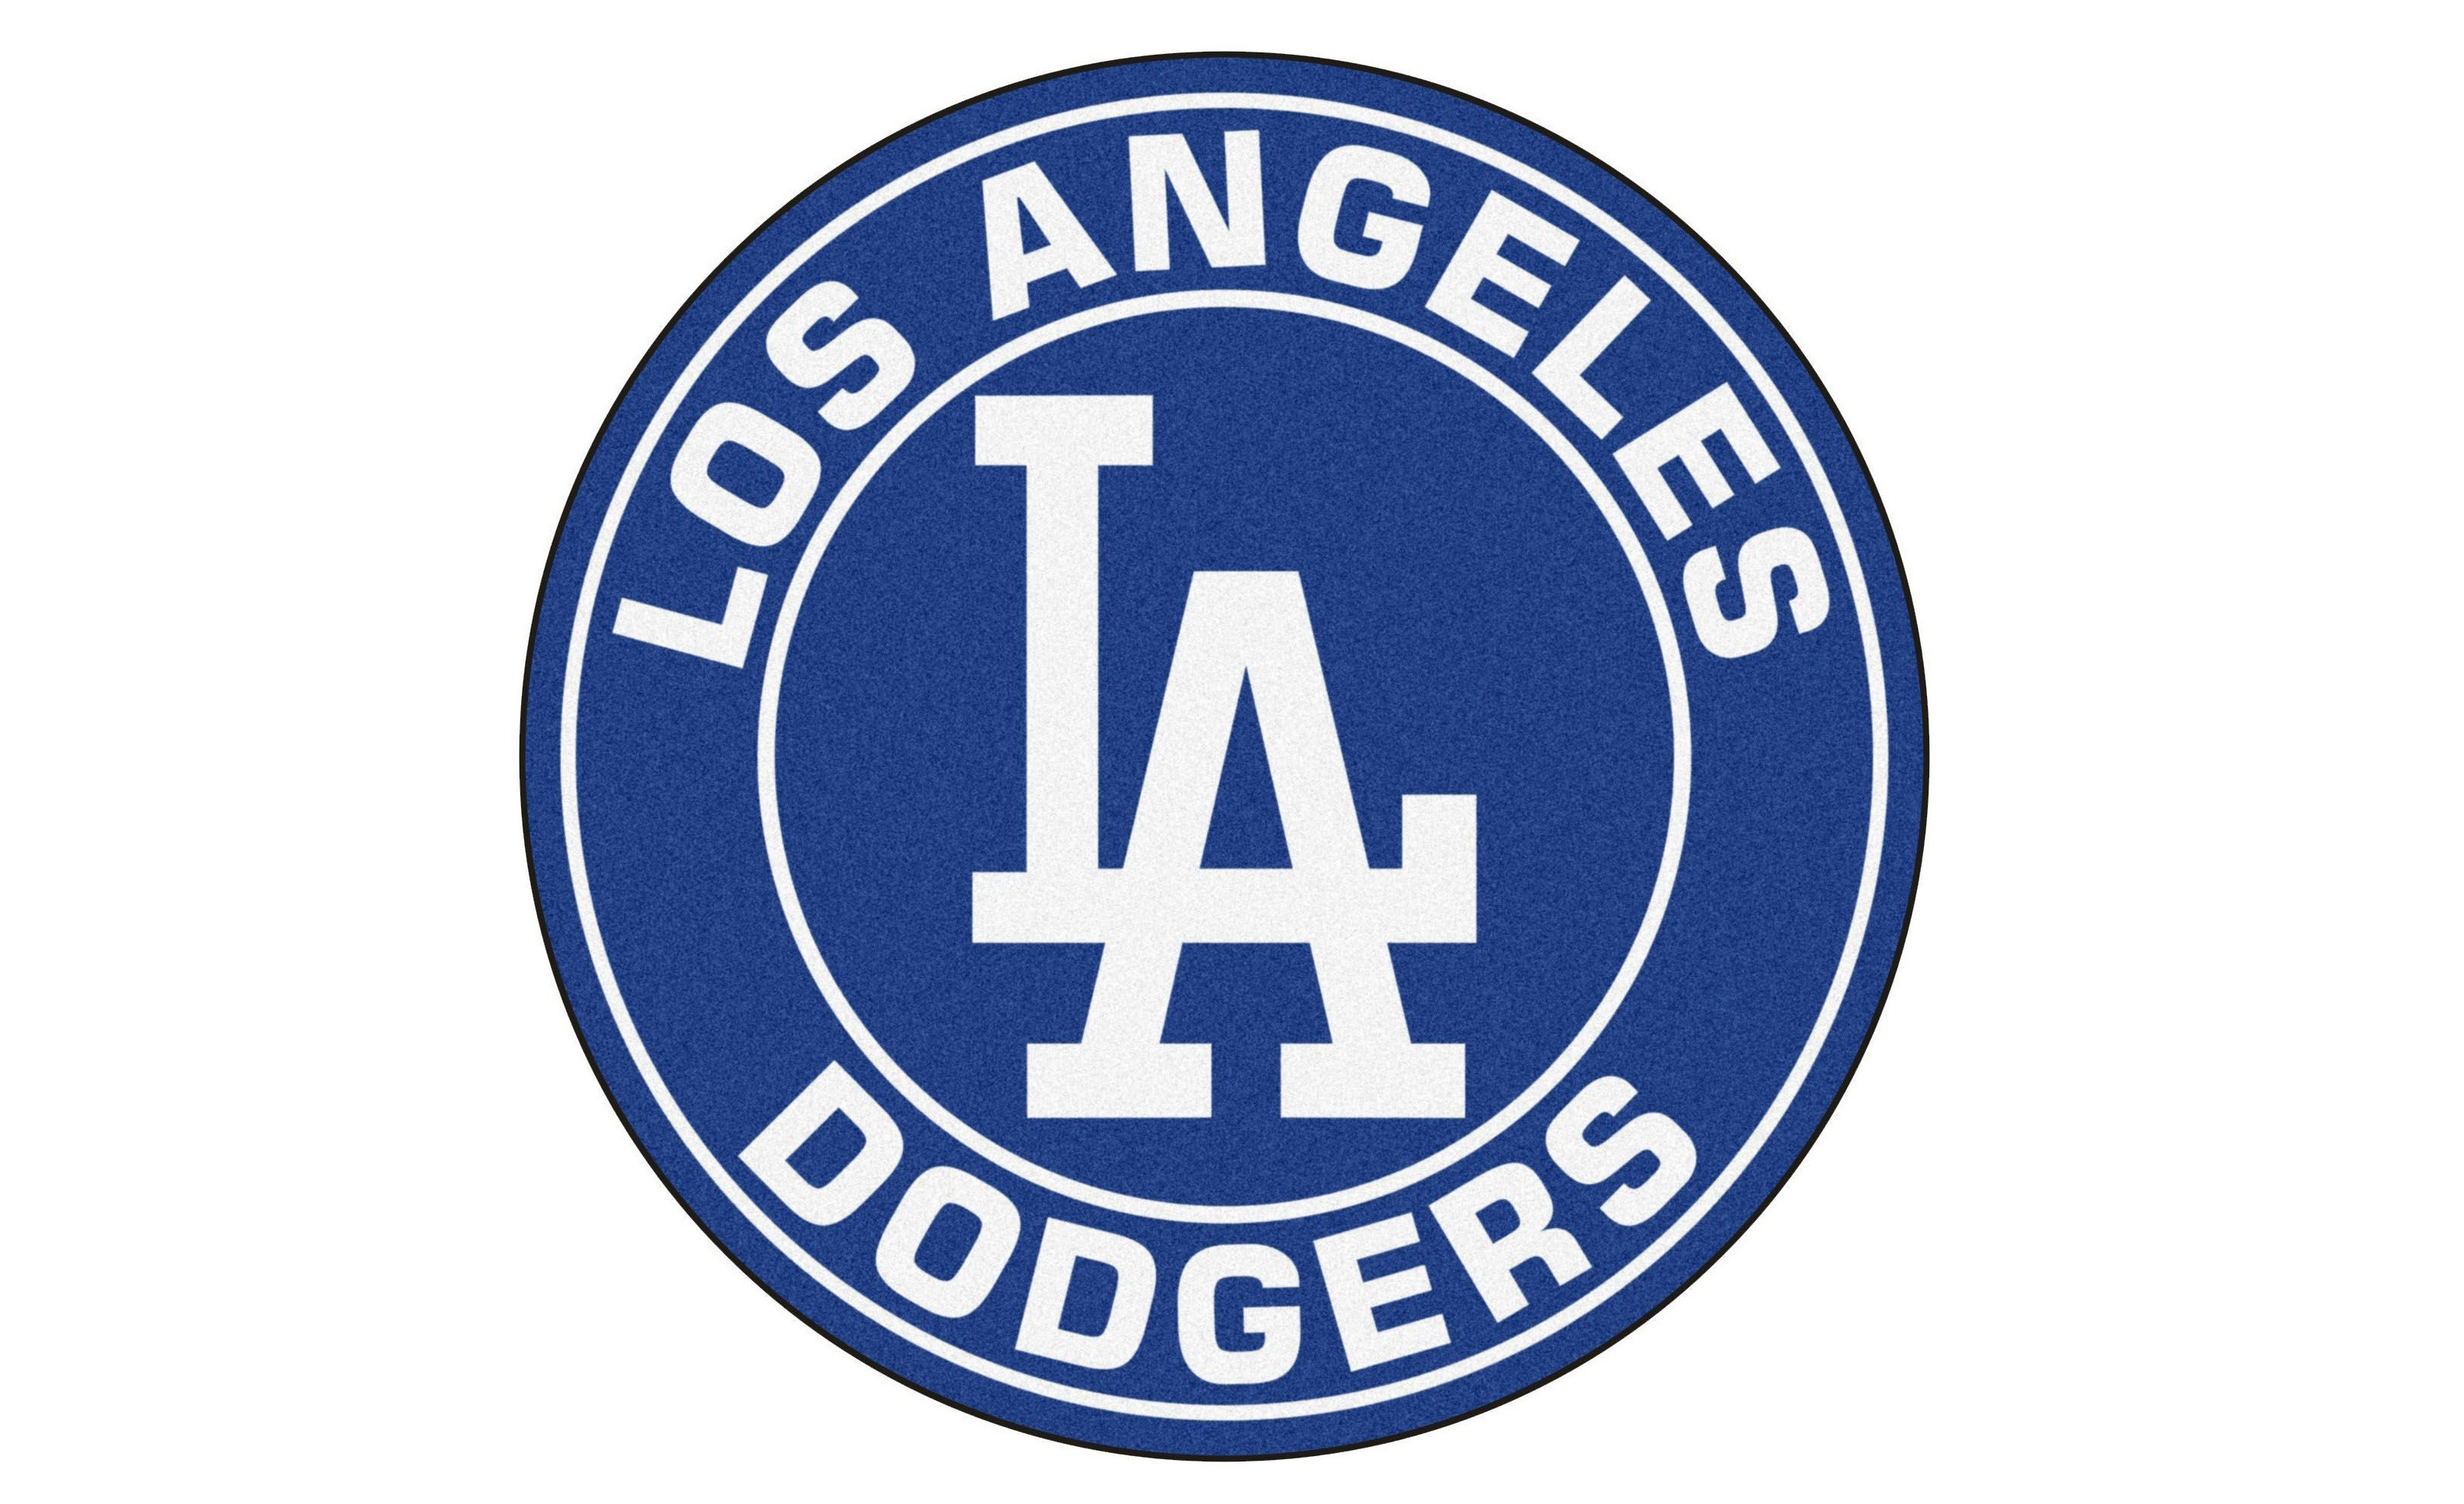 dodger logos wallpapers 64 images